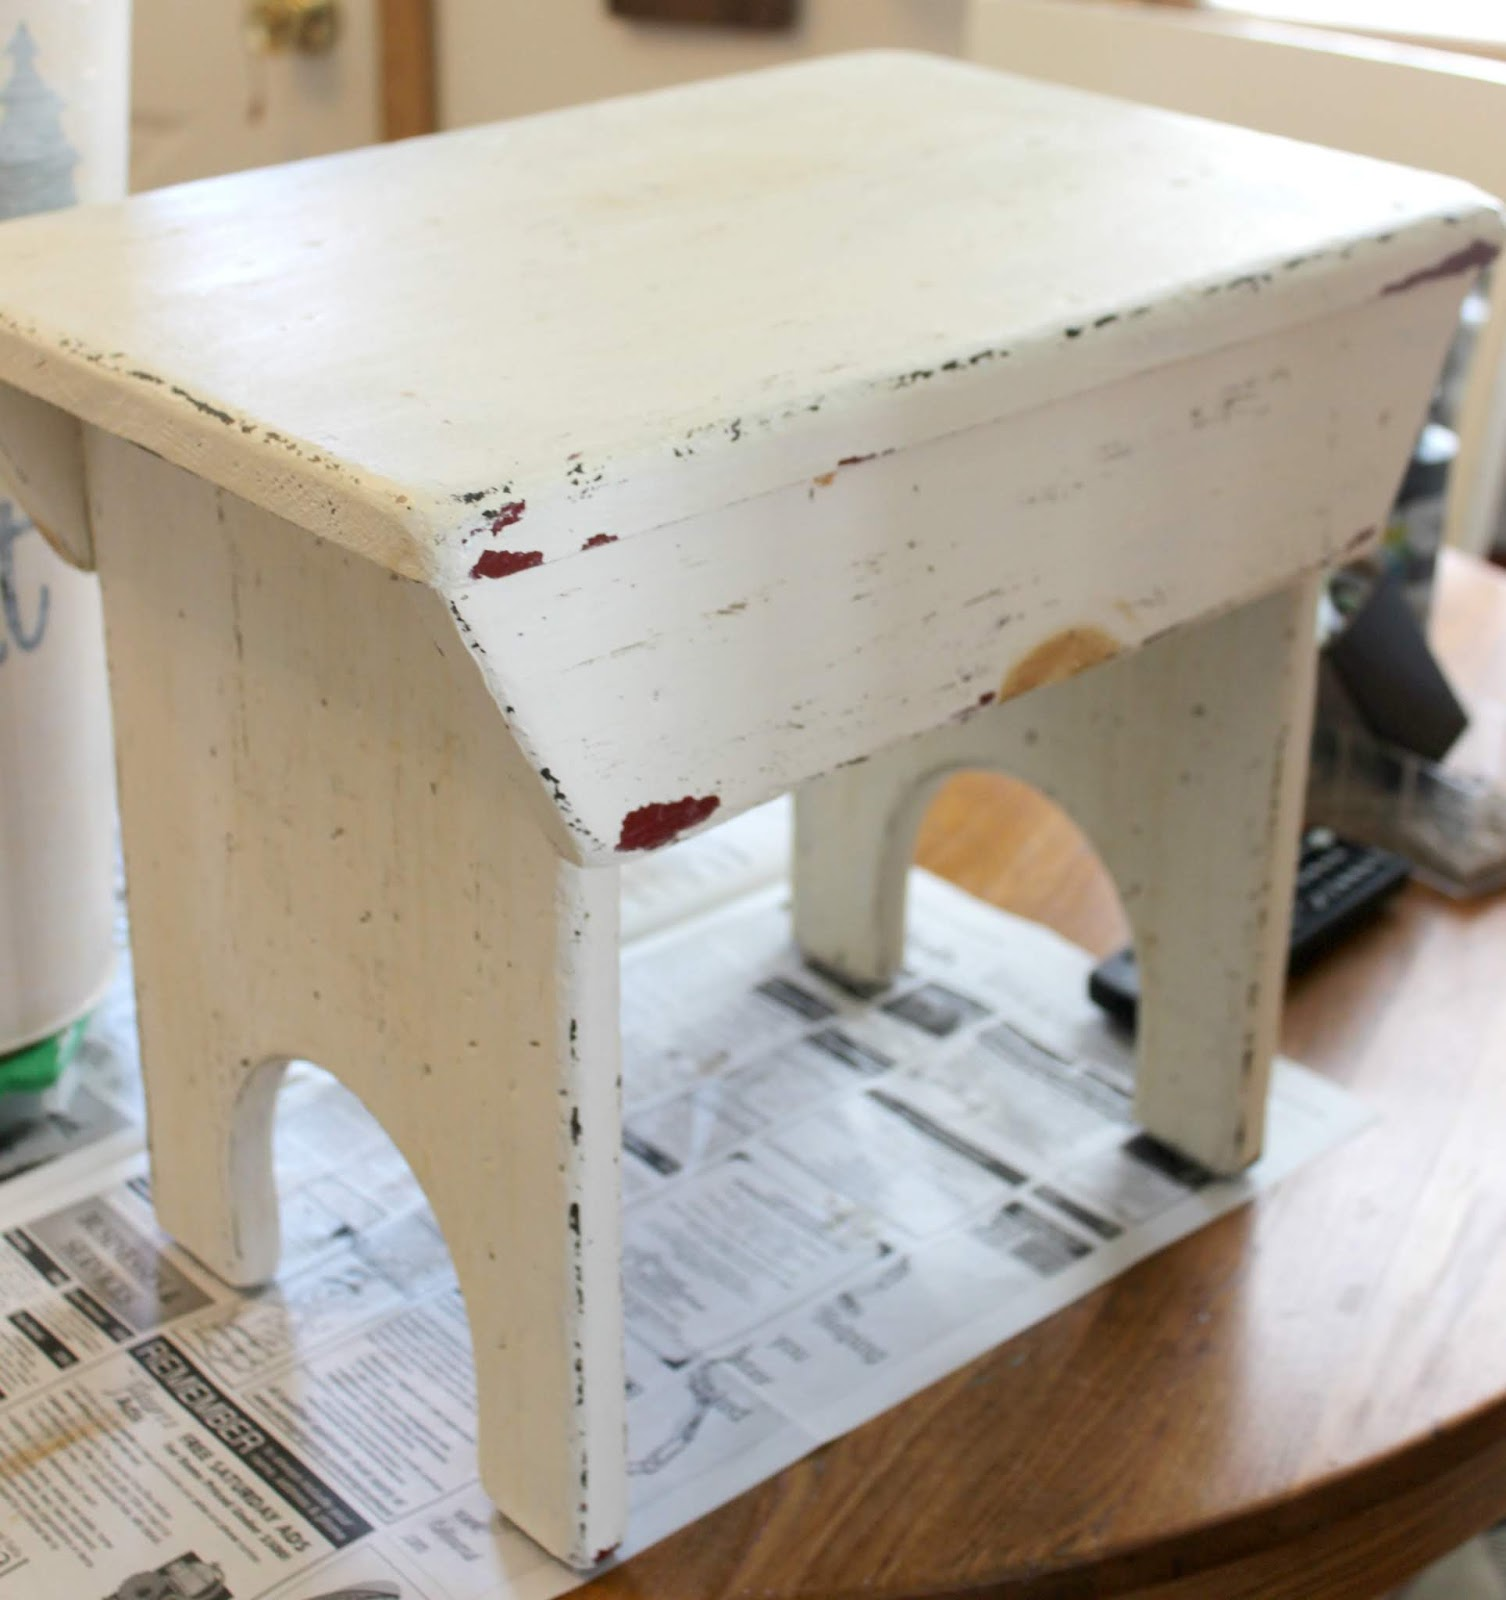 Awesome Upcycling A Stool With Paint And A Herringbone Stencil Andrewgaddart Wooden Chair Designs For Living Room Andrewgaddartcom